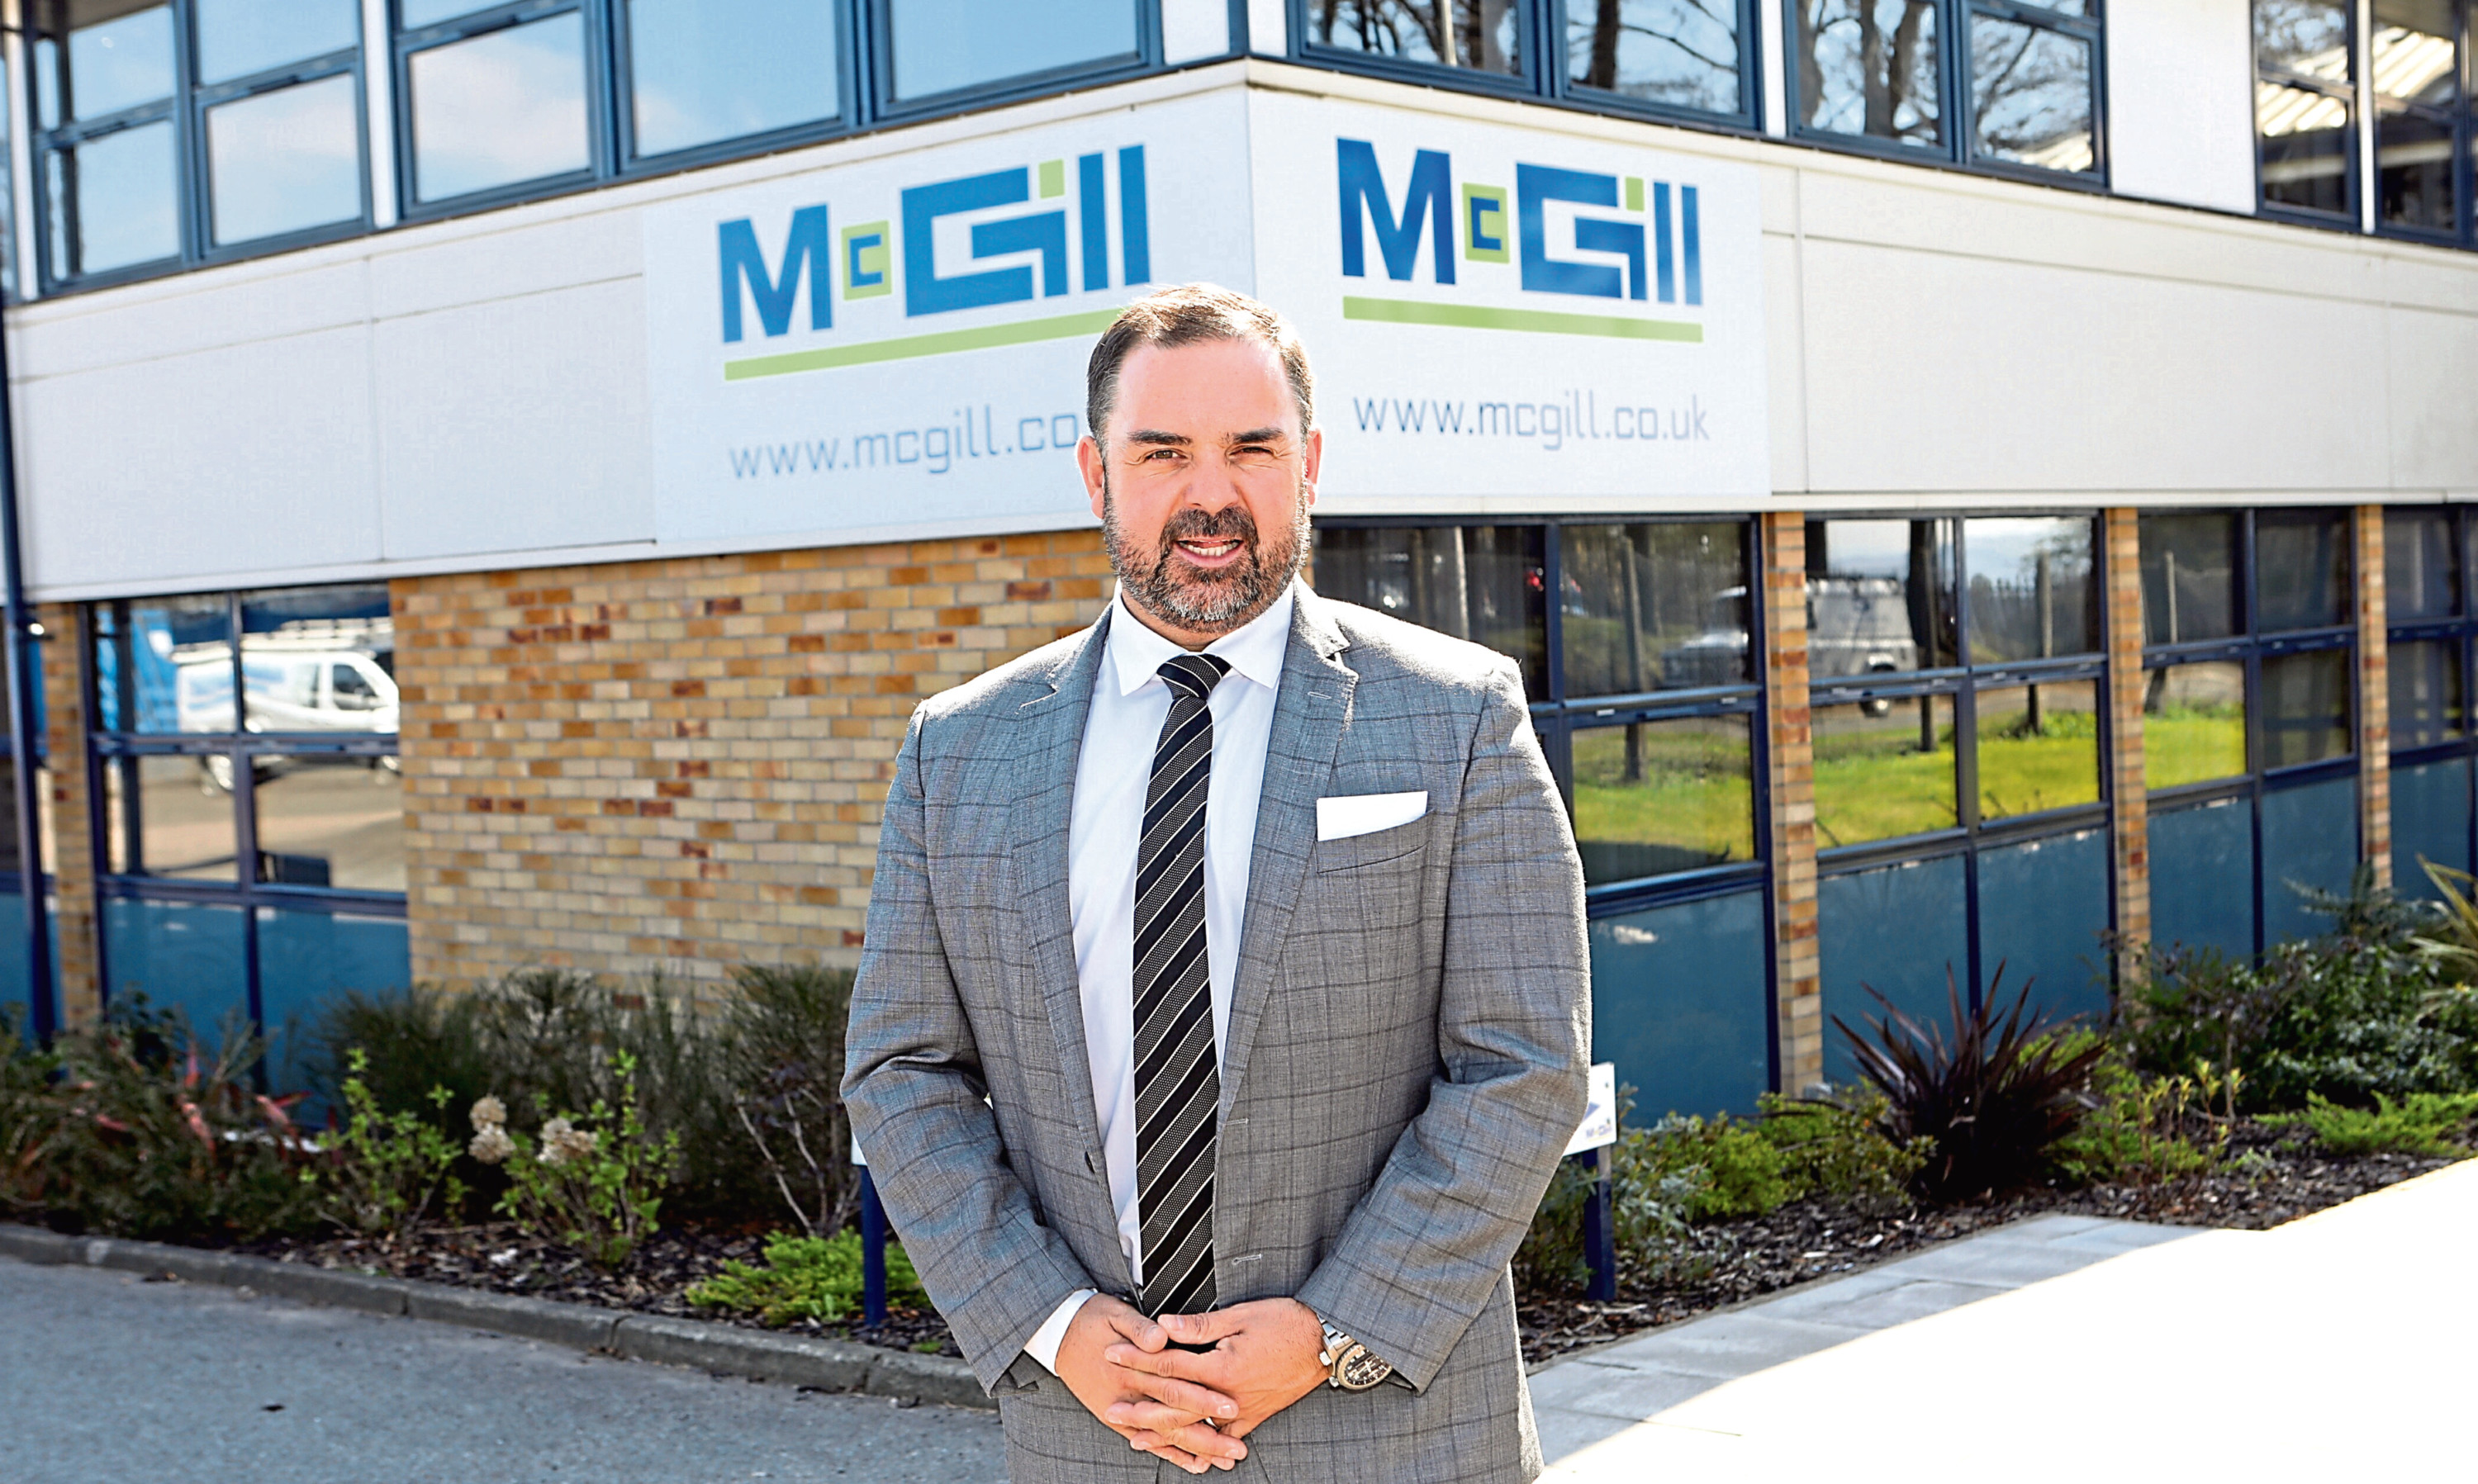 McGill chief executive Graeme Carling at the firms headquarters in Harrison Road, Dundee.